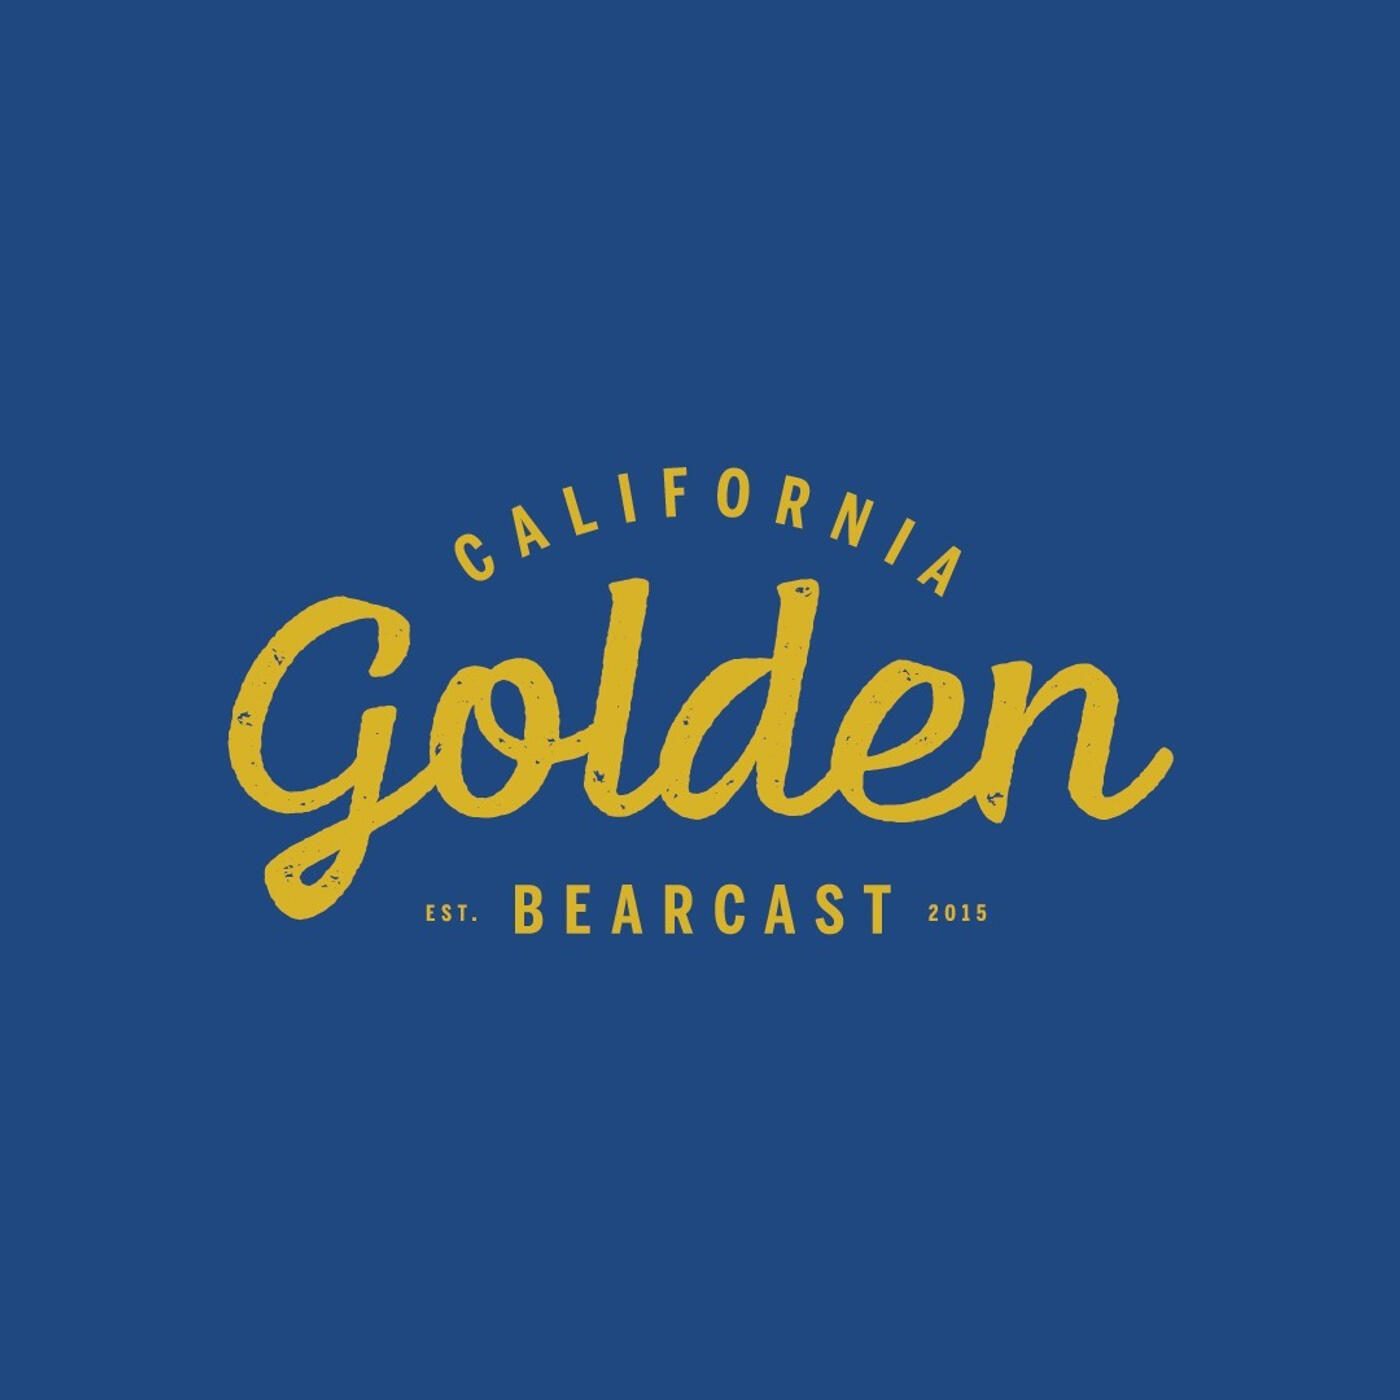 The California Golden Bearcast